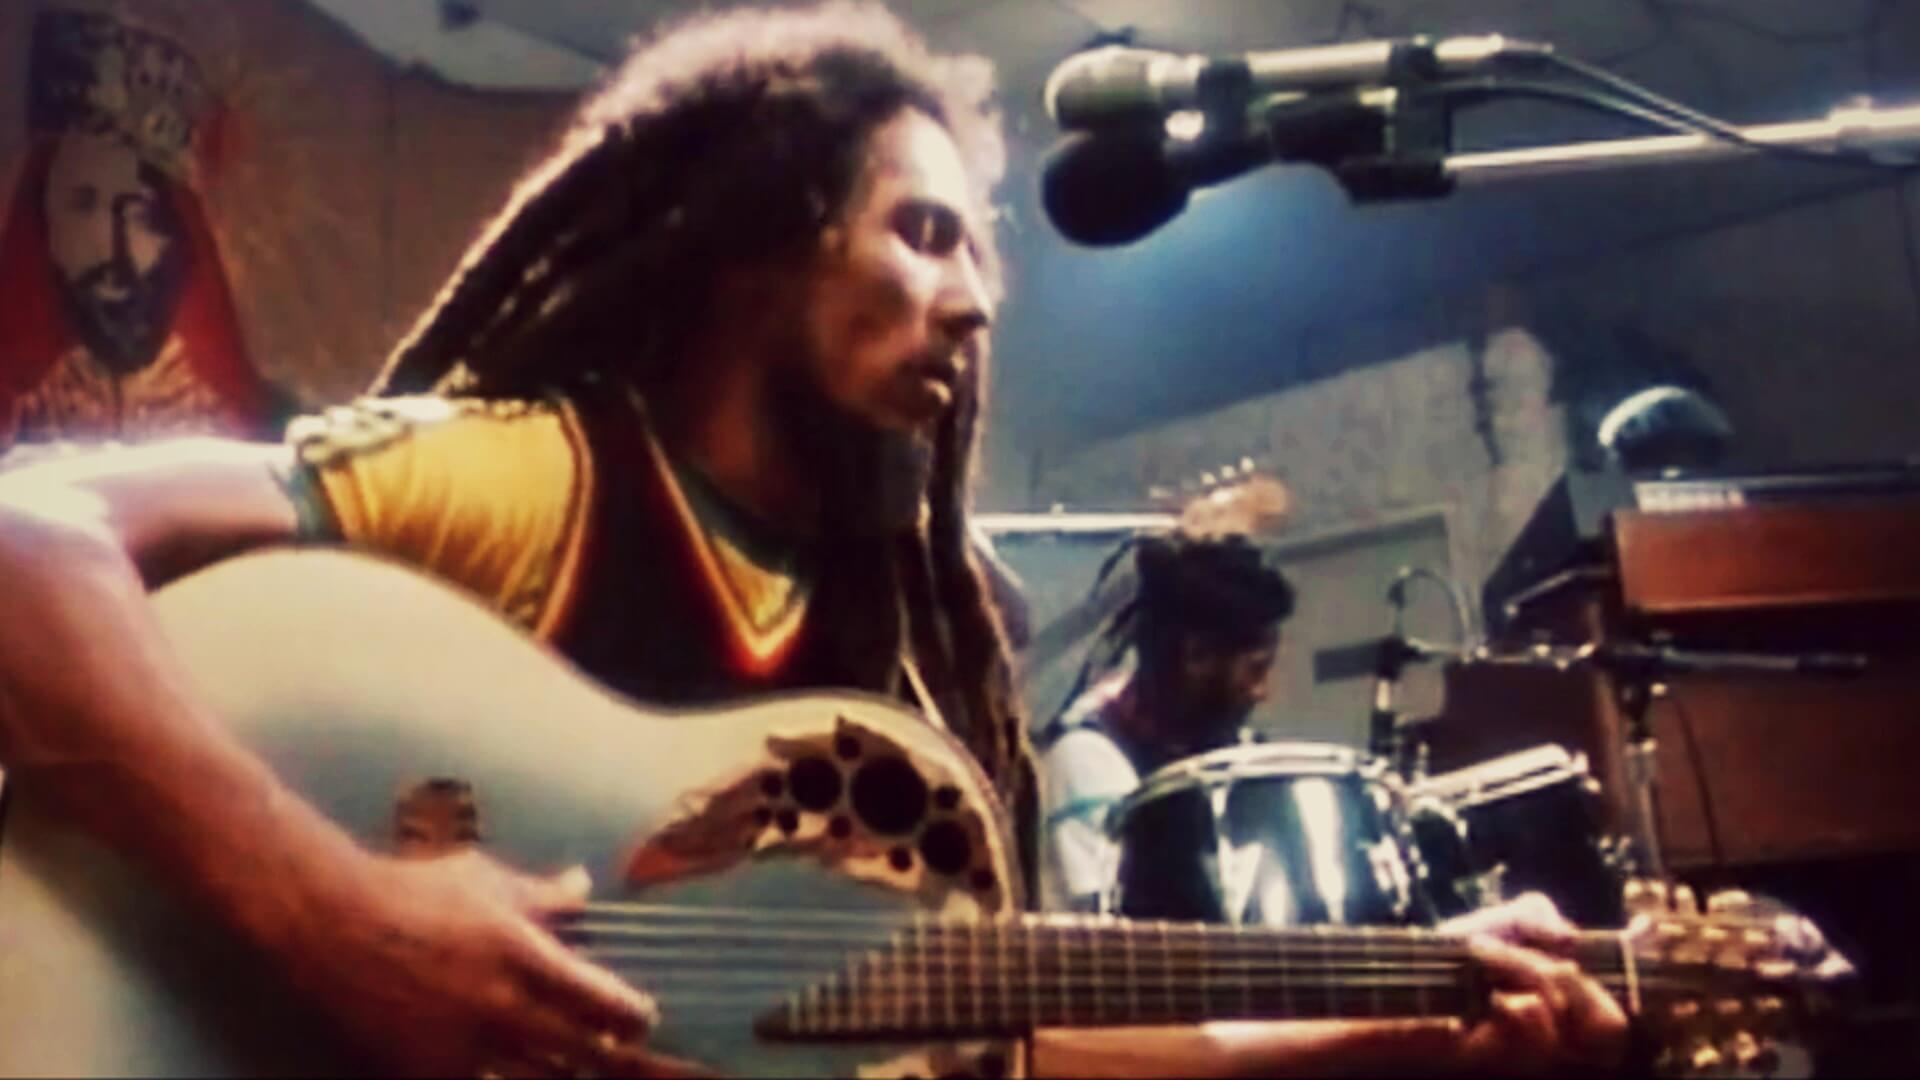 Won't you help to sing? Bob Marley's Redemption Song - MH1986